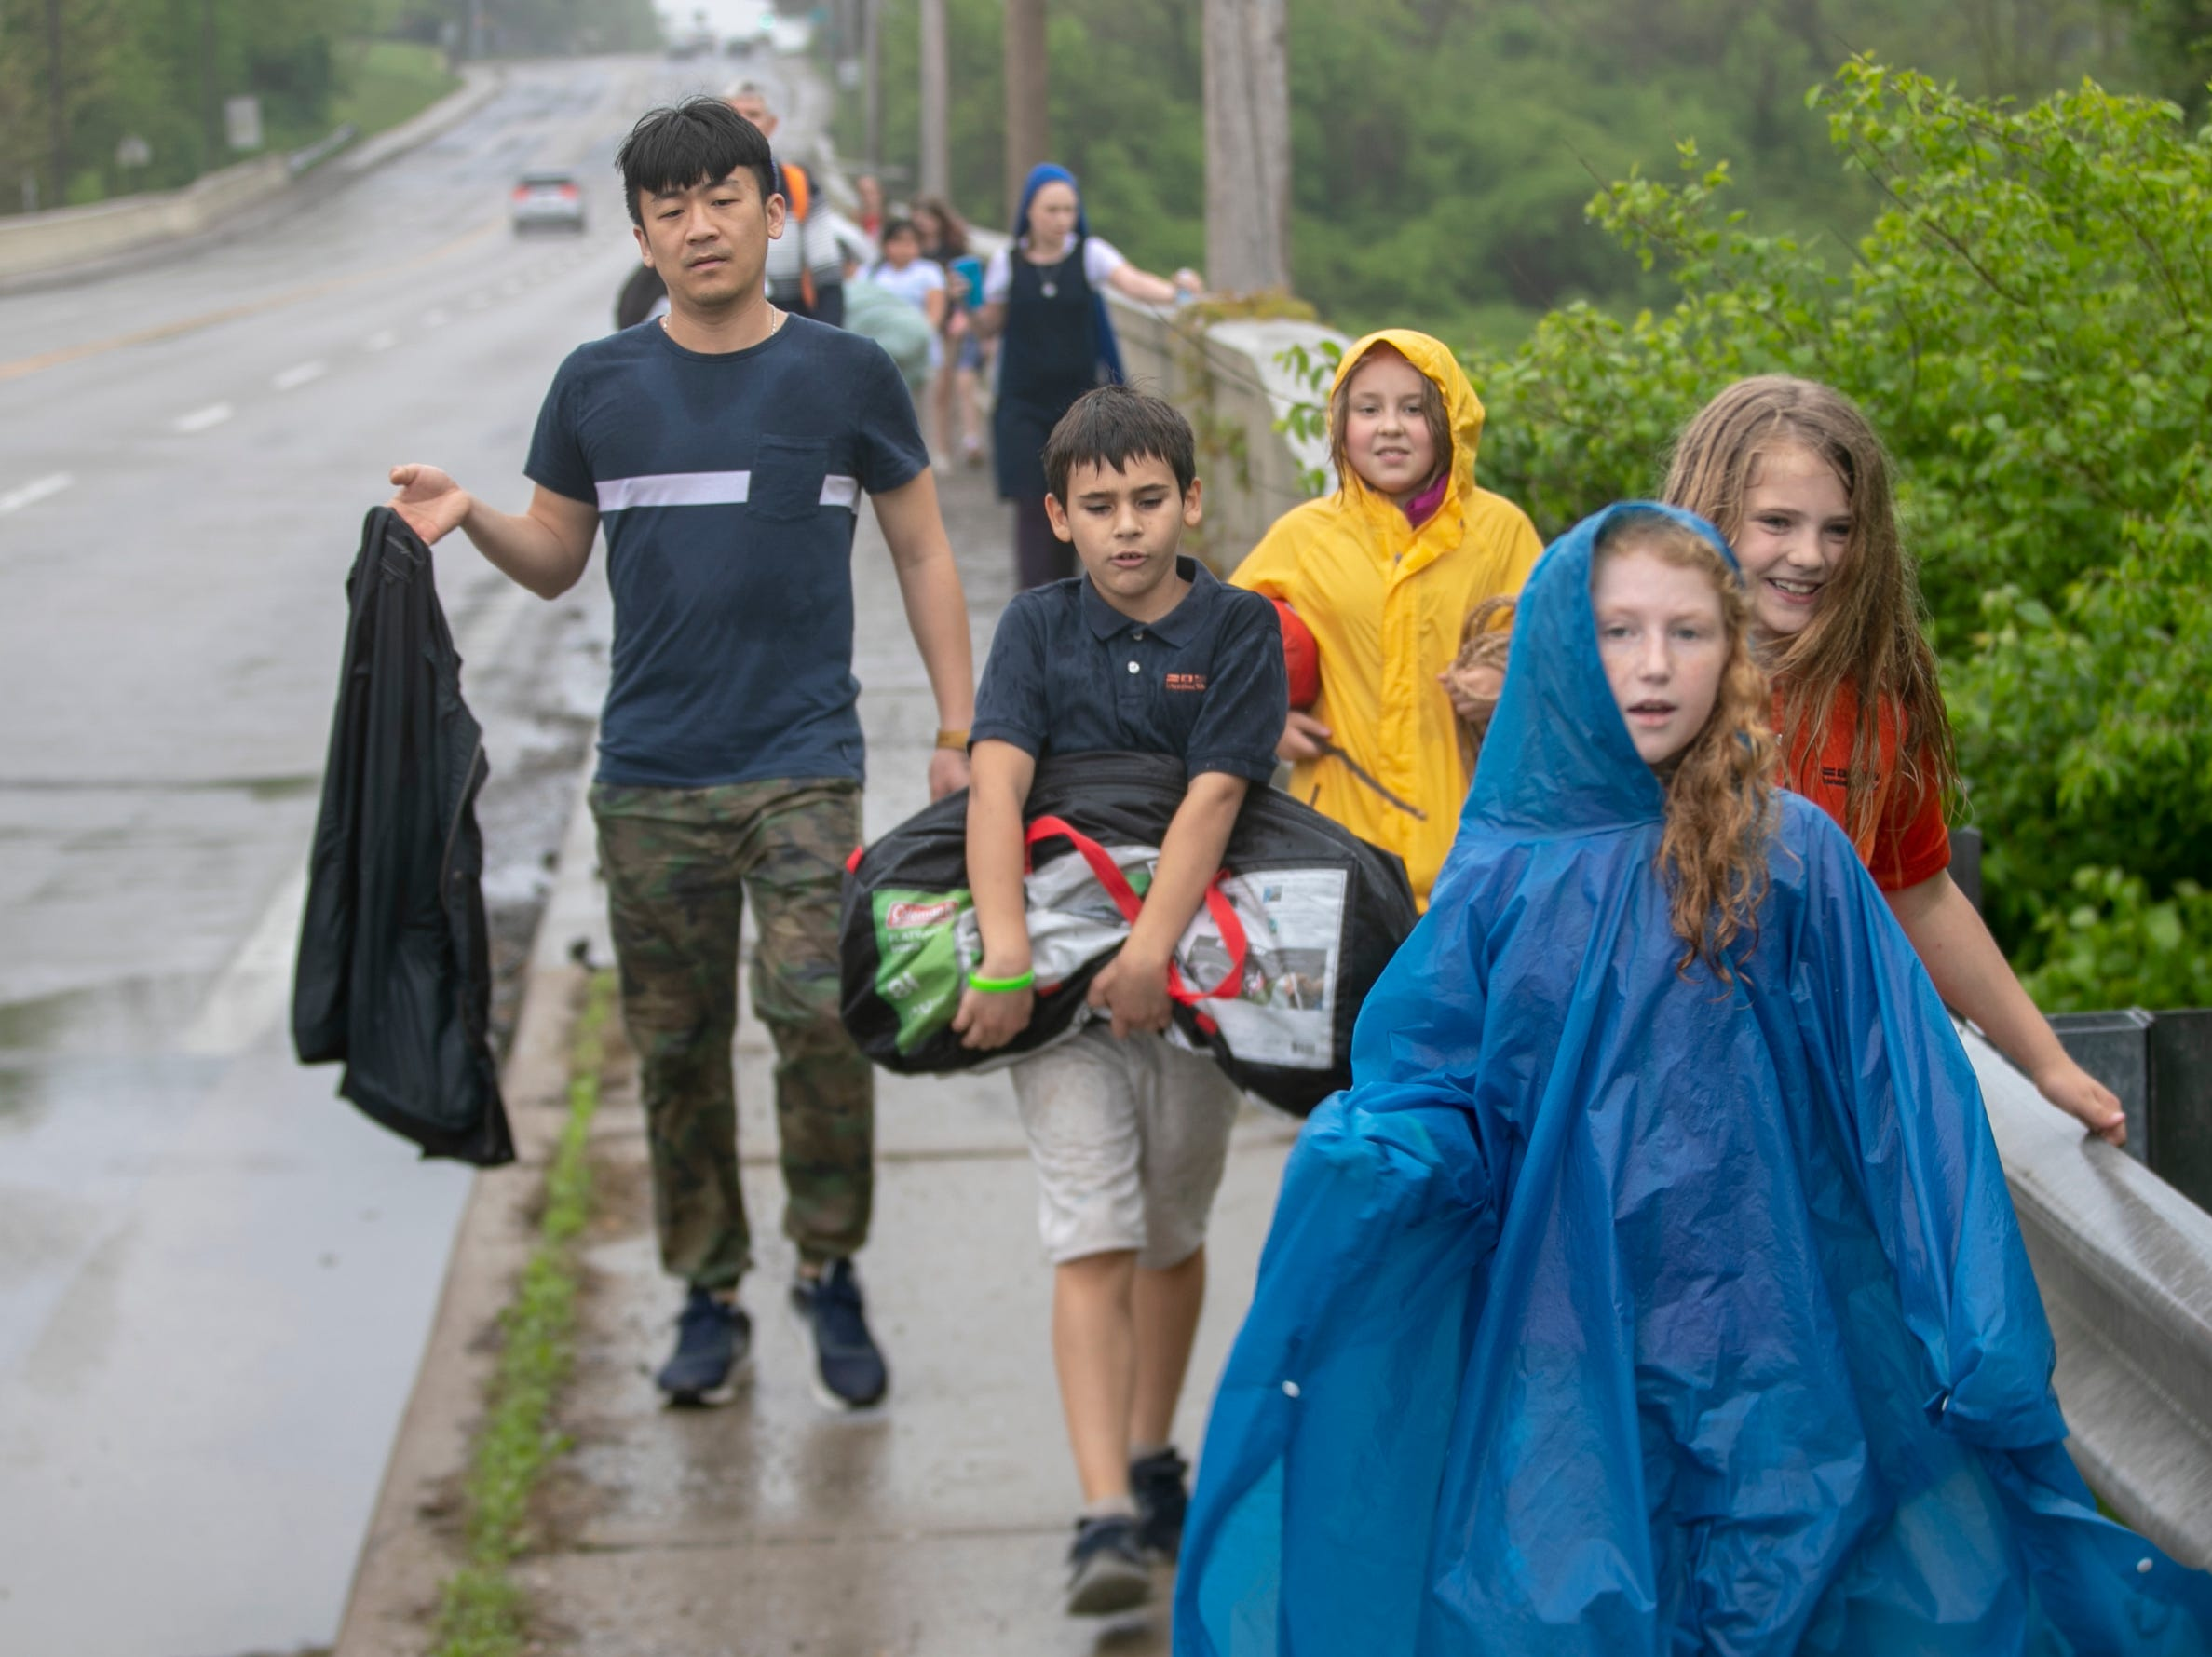 Students and teachers walk in a driving rain on Michigan Road during a workshop for fourth graders at International School of Indiana, Indianapolis, Thursday, May 1, 2019. They are walking about two miles from the lower grades campus to the middle school on Michigan Road.